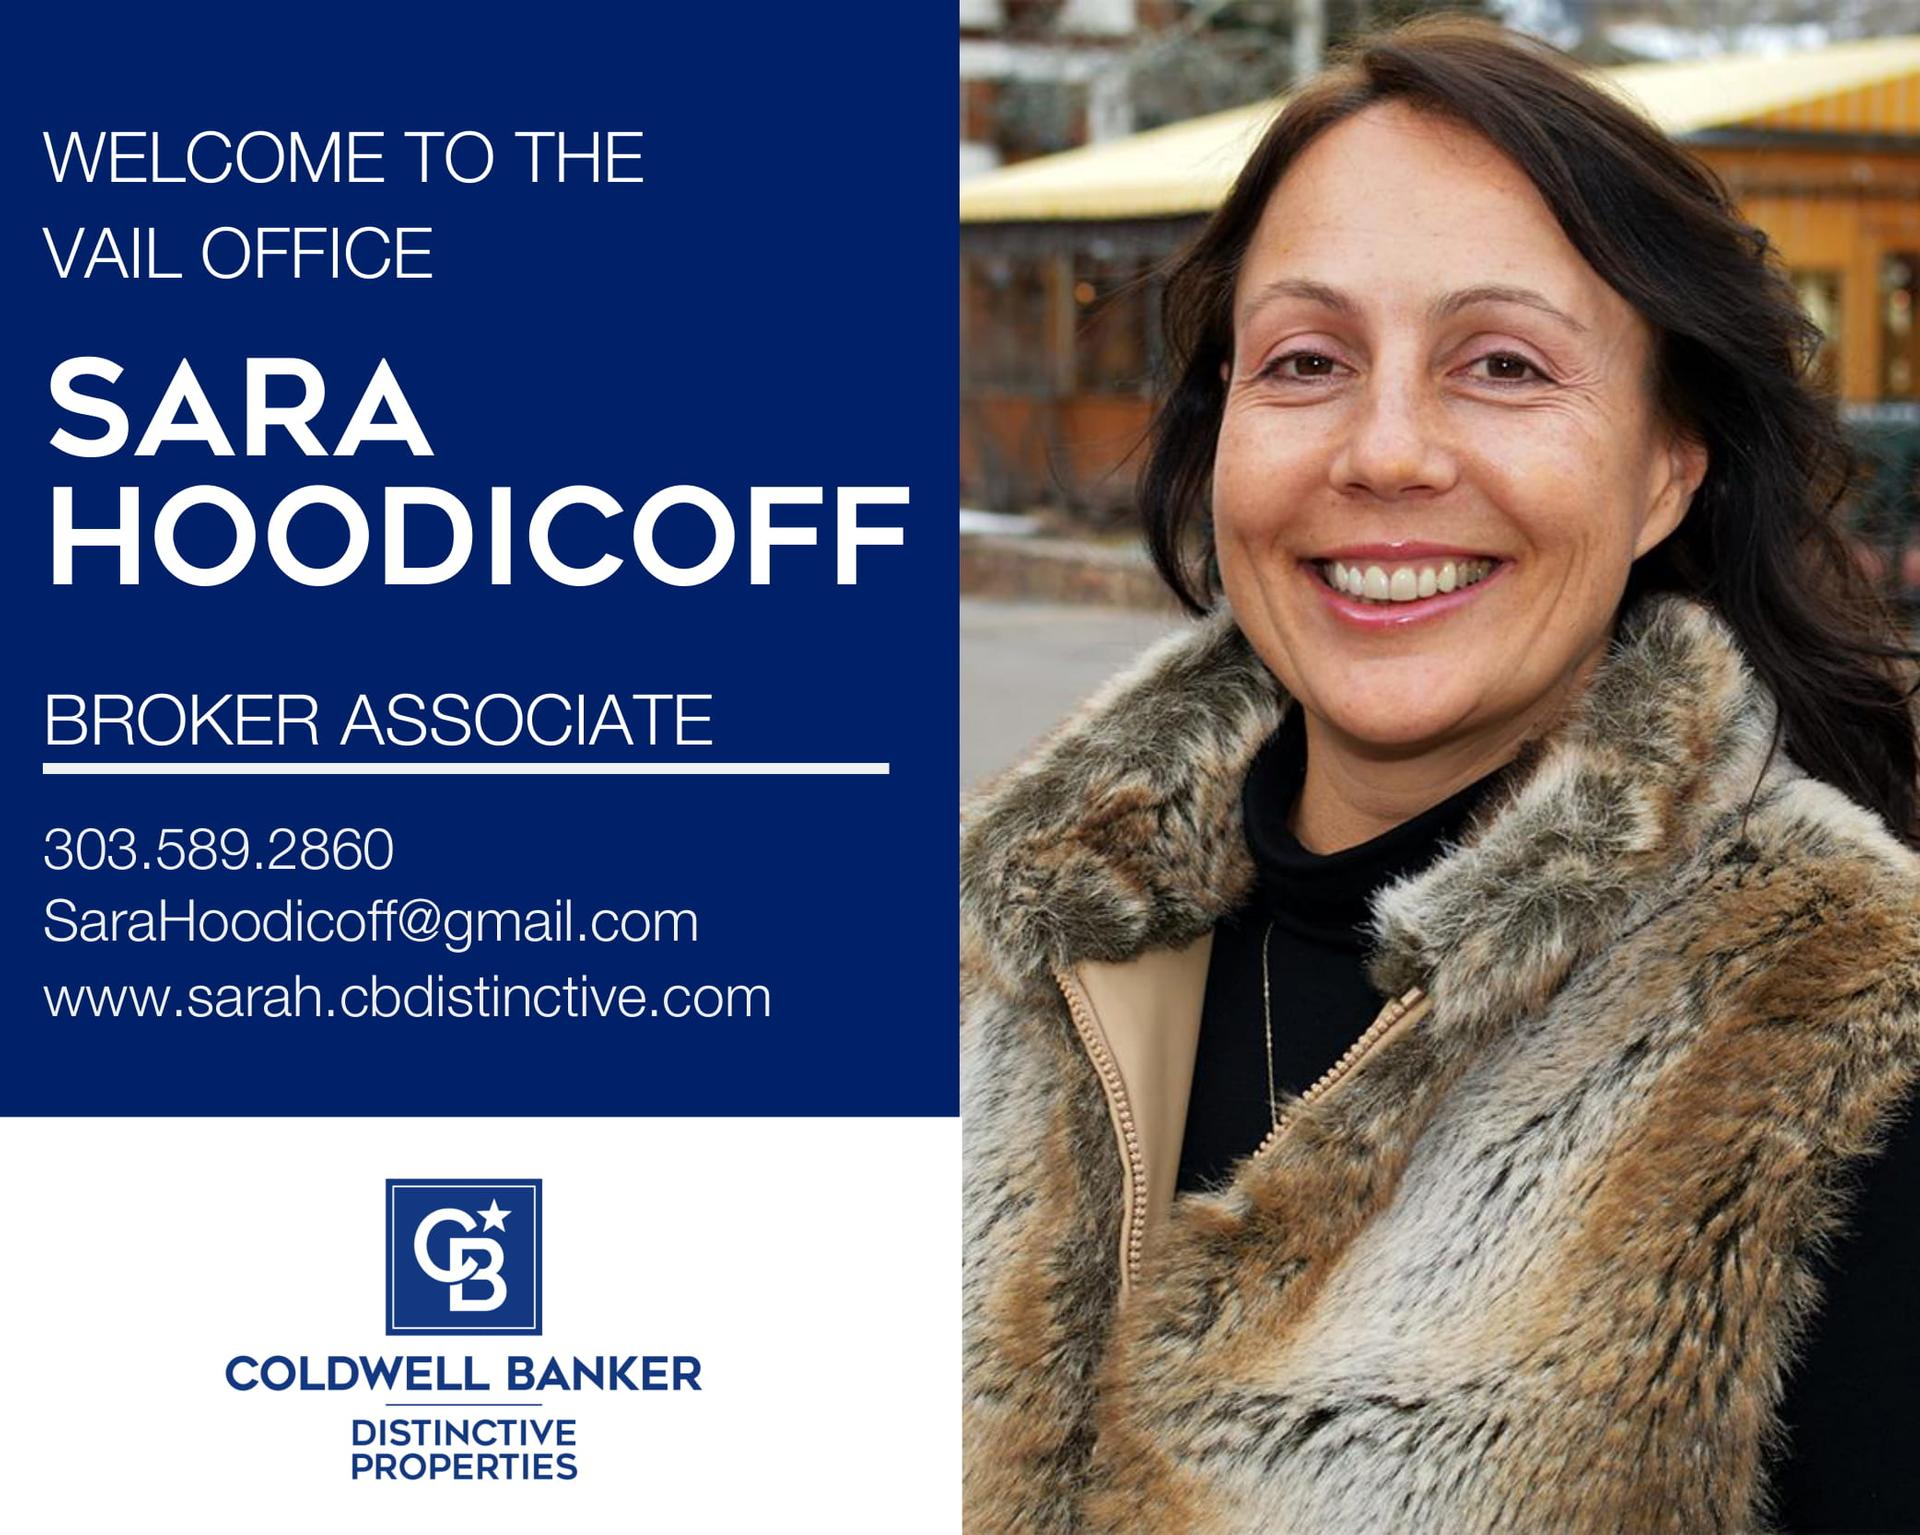 Please help us welcome Sara Hoodicoff back to our Coldwell Banker family! Main Photo